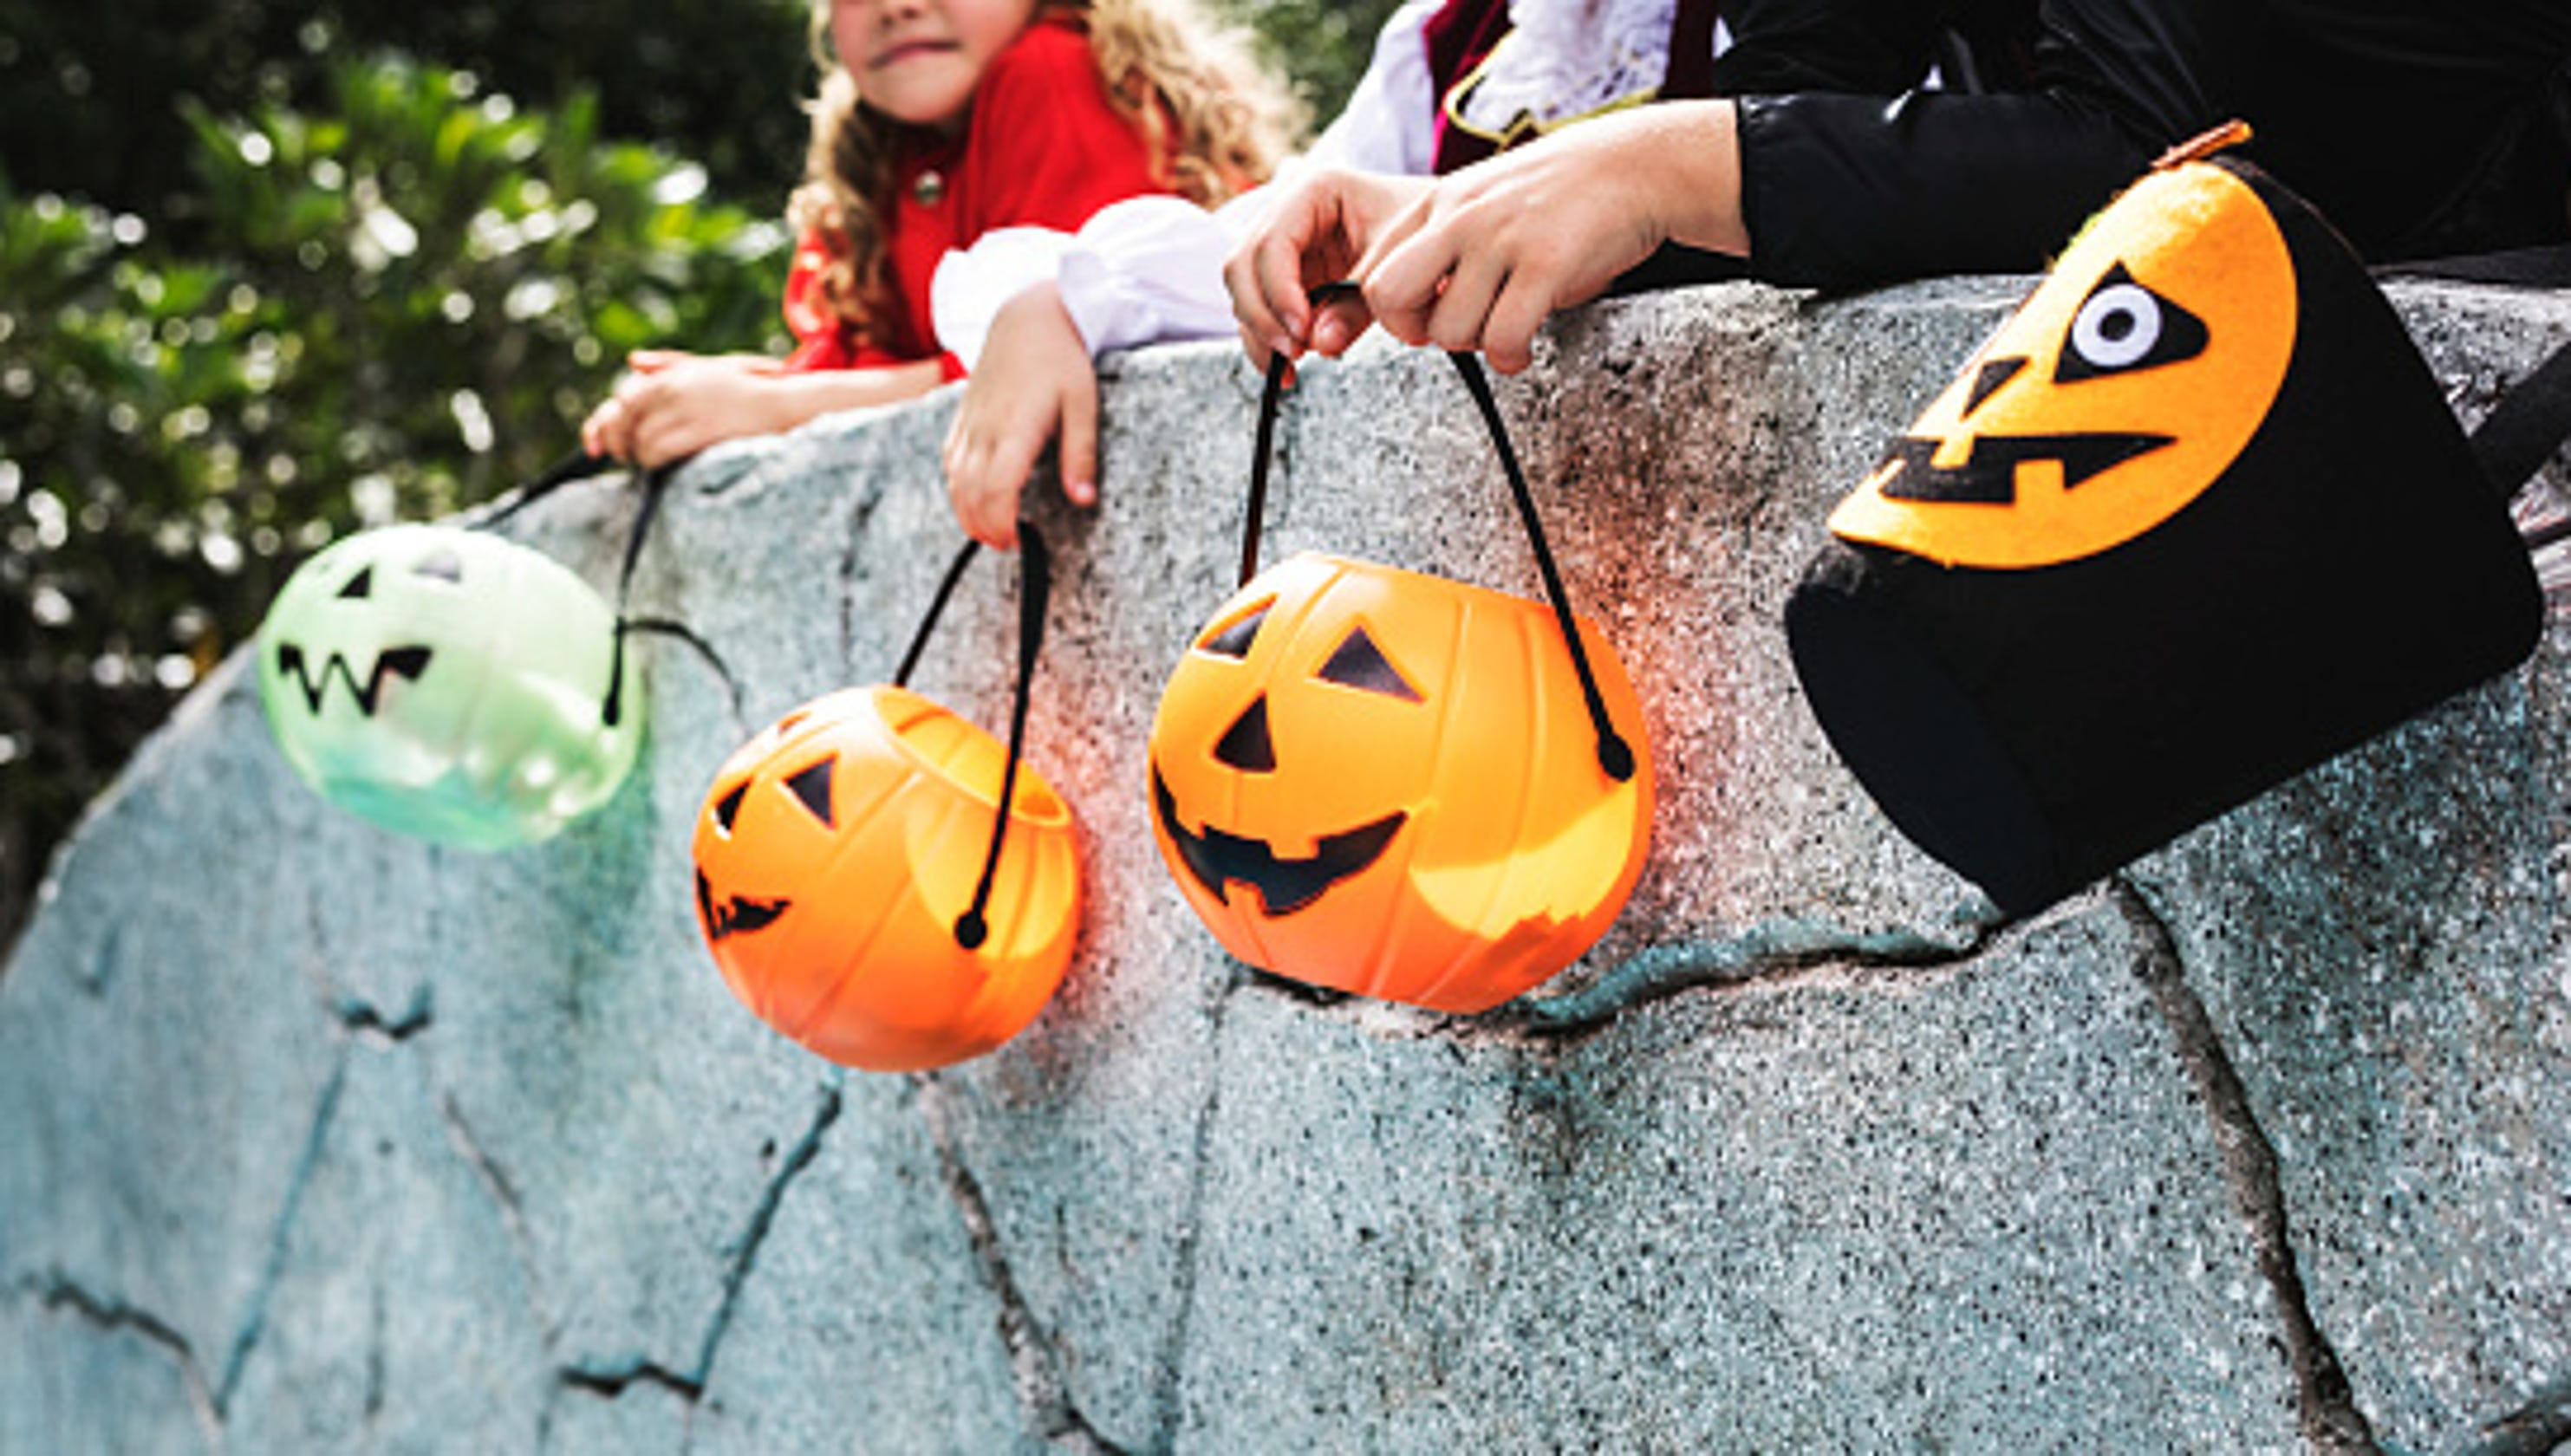 The organization that started a petition to change the date of Halloween has a new goal in mind